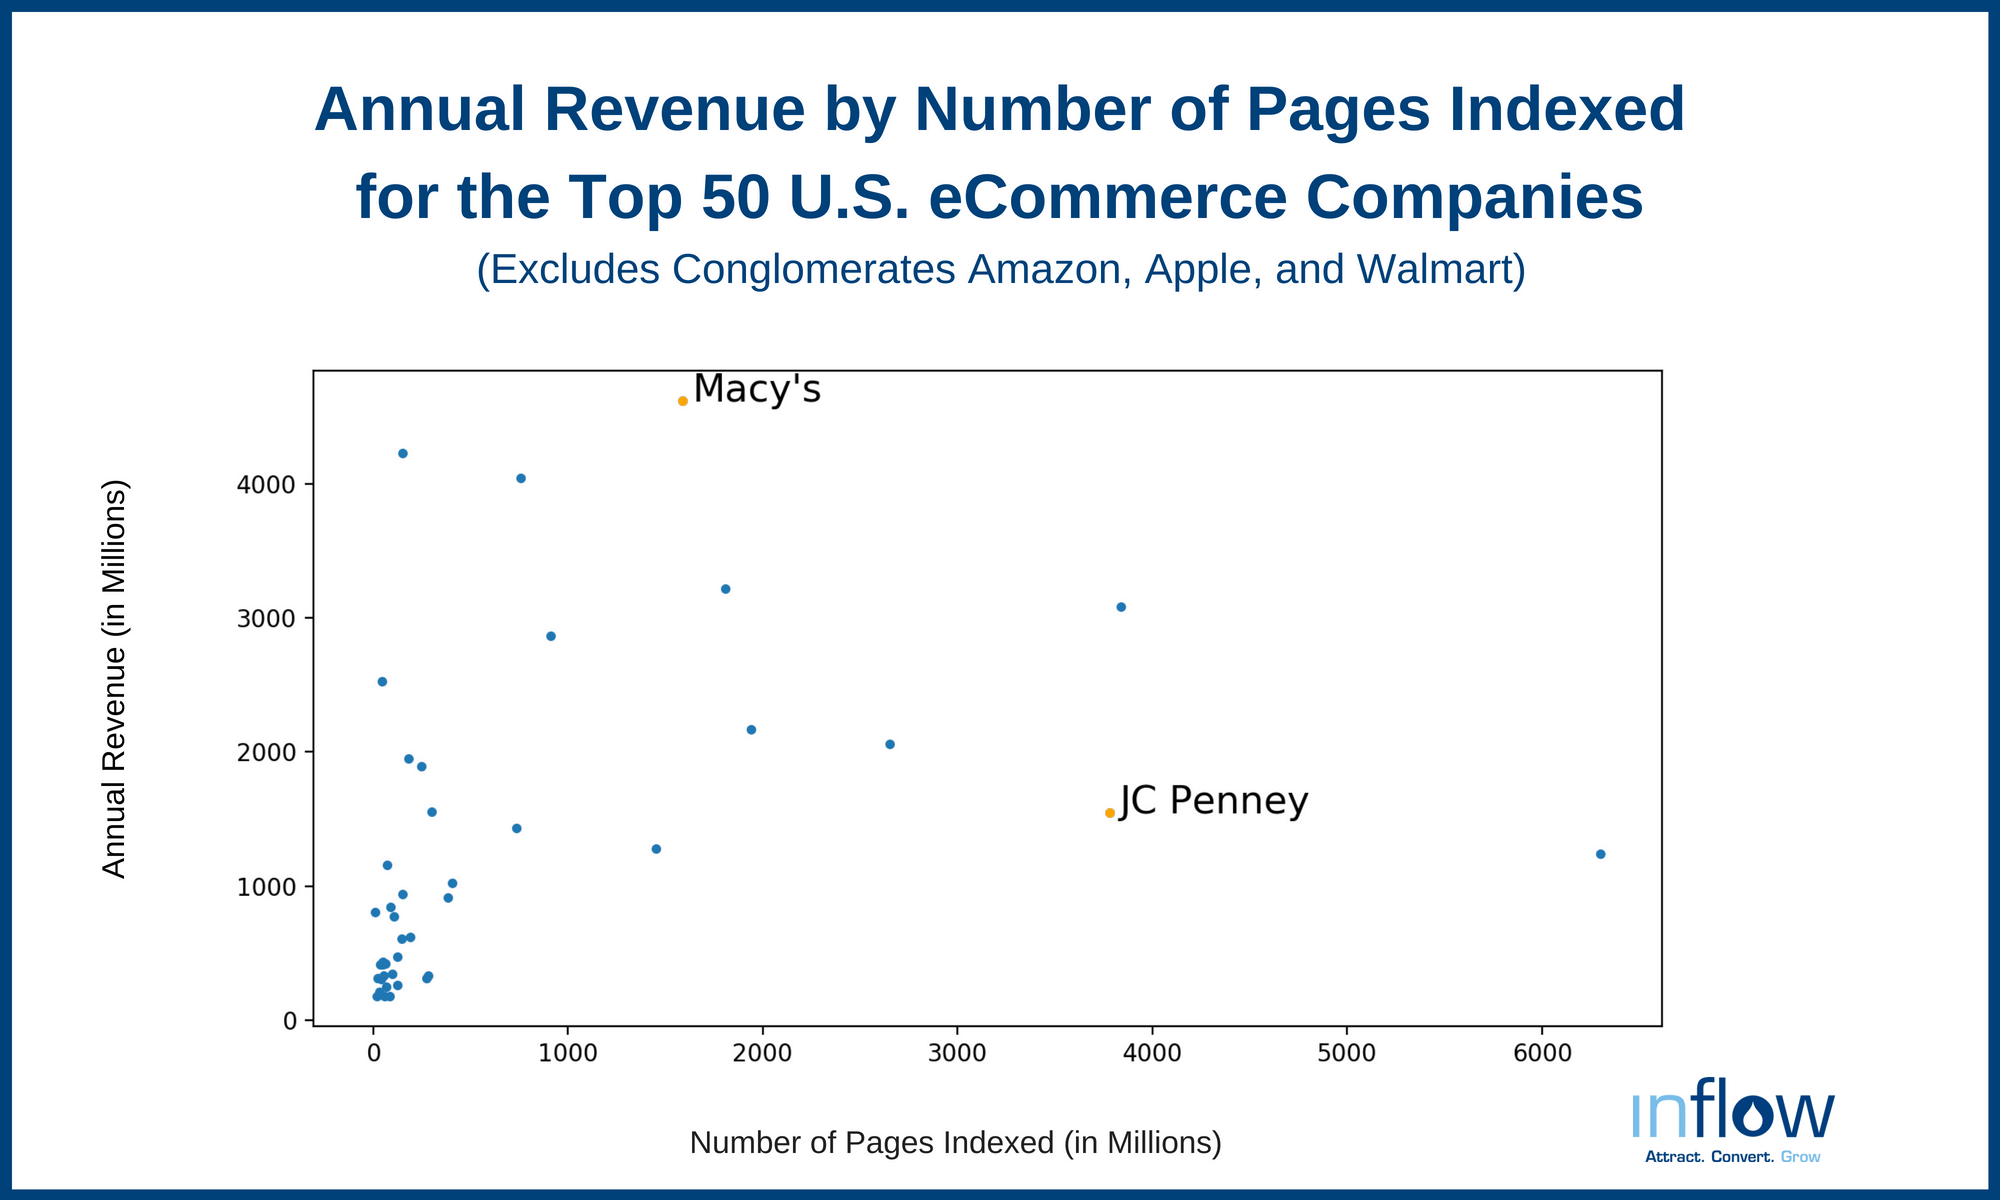 Annual Revenue by Number of Pages Indexed for the Top 50 U.S. eCommerce Companies